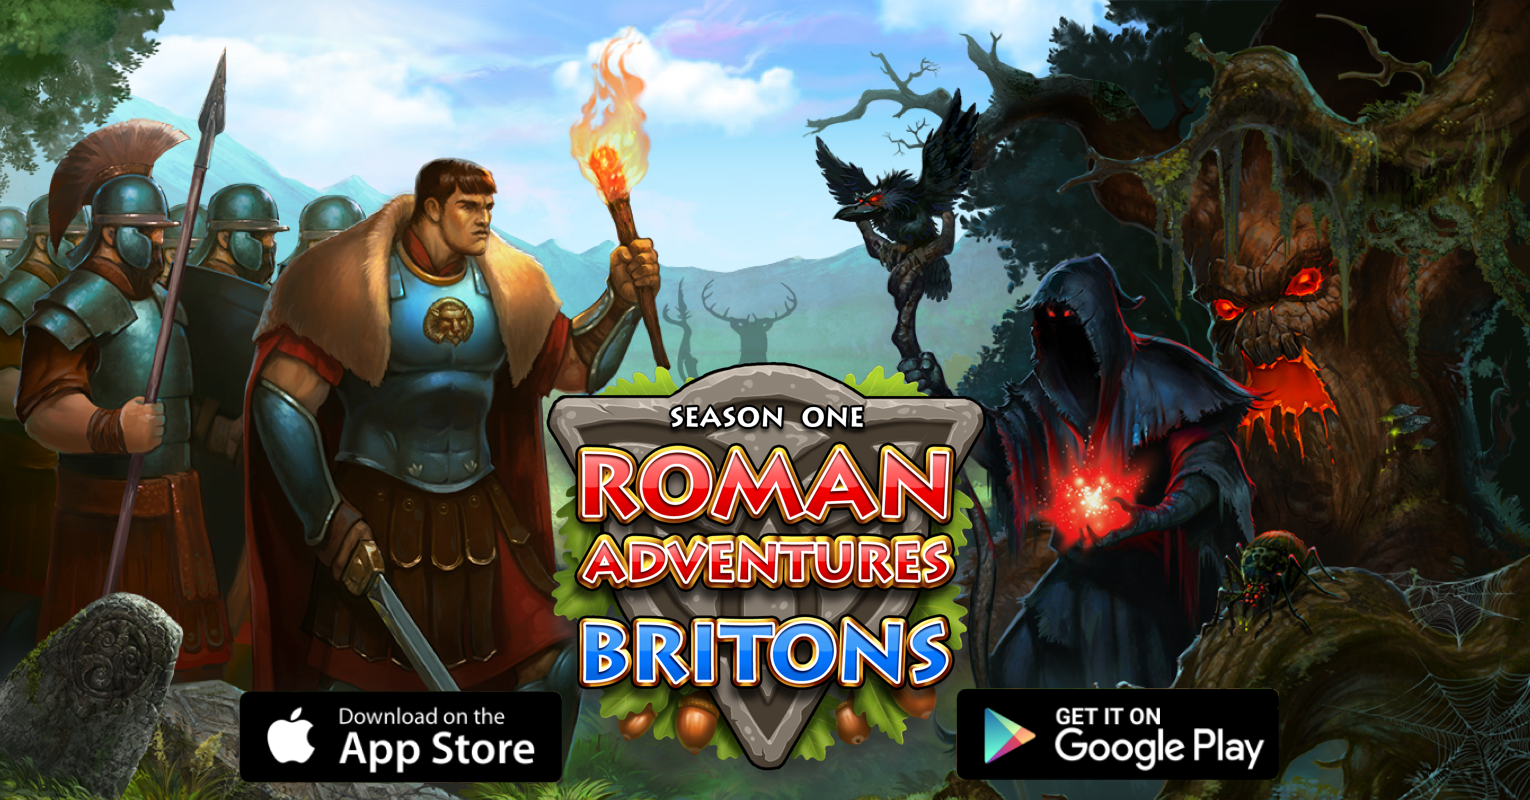 Roman Adventures: Britons Season 1 is now available for iOS and Android!